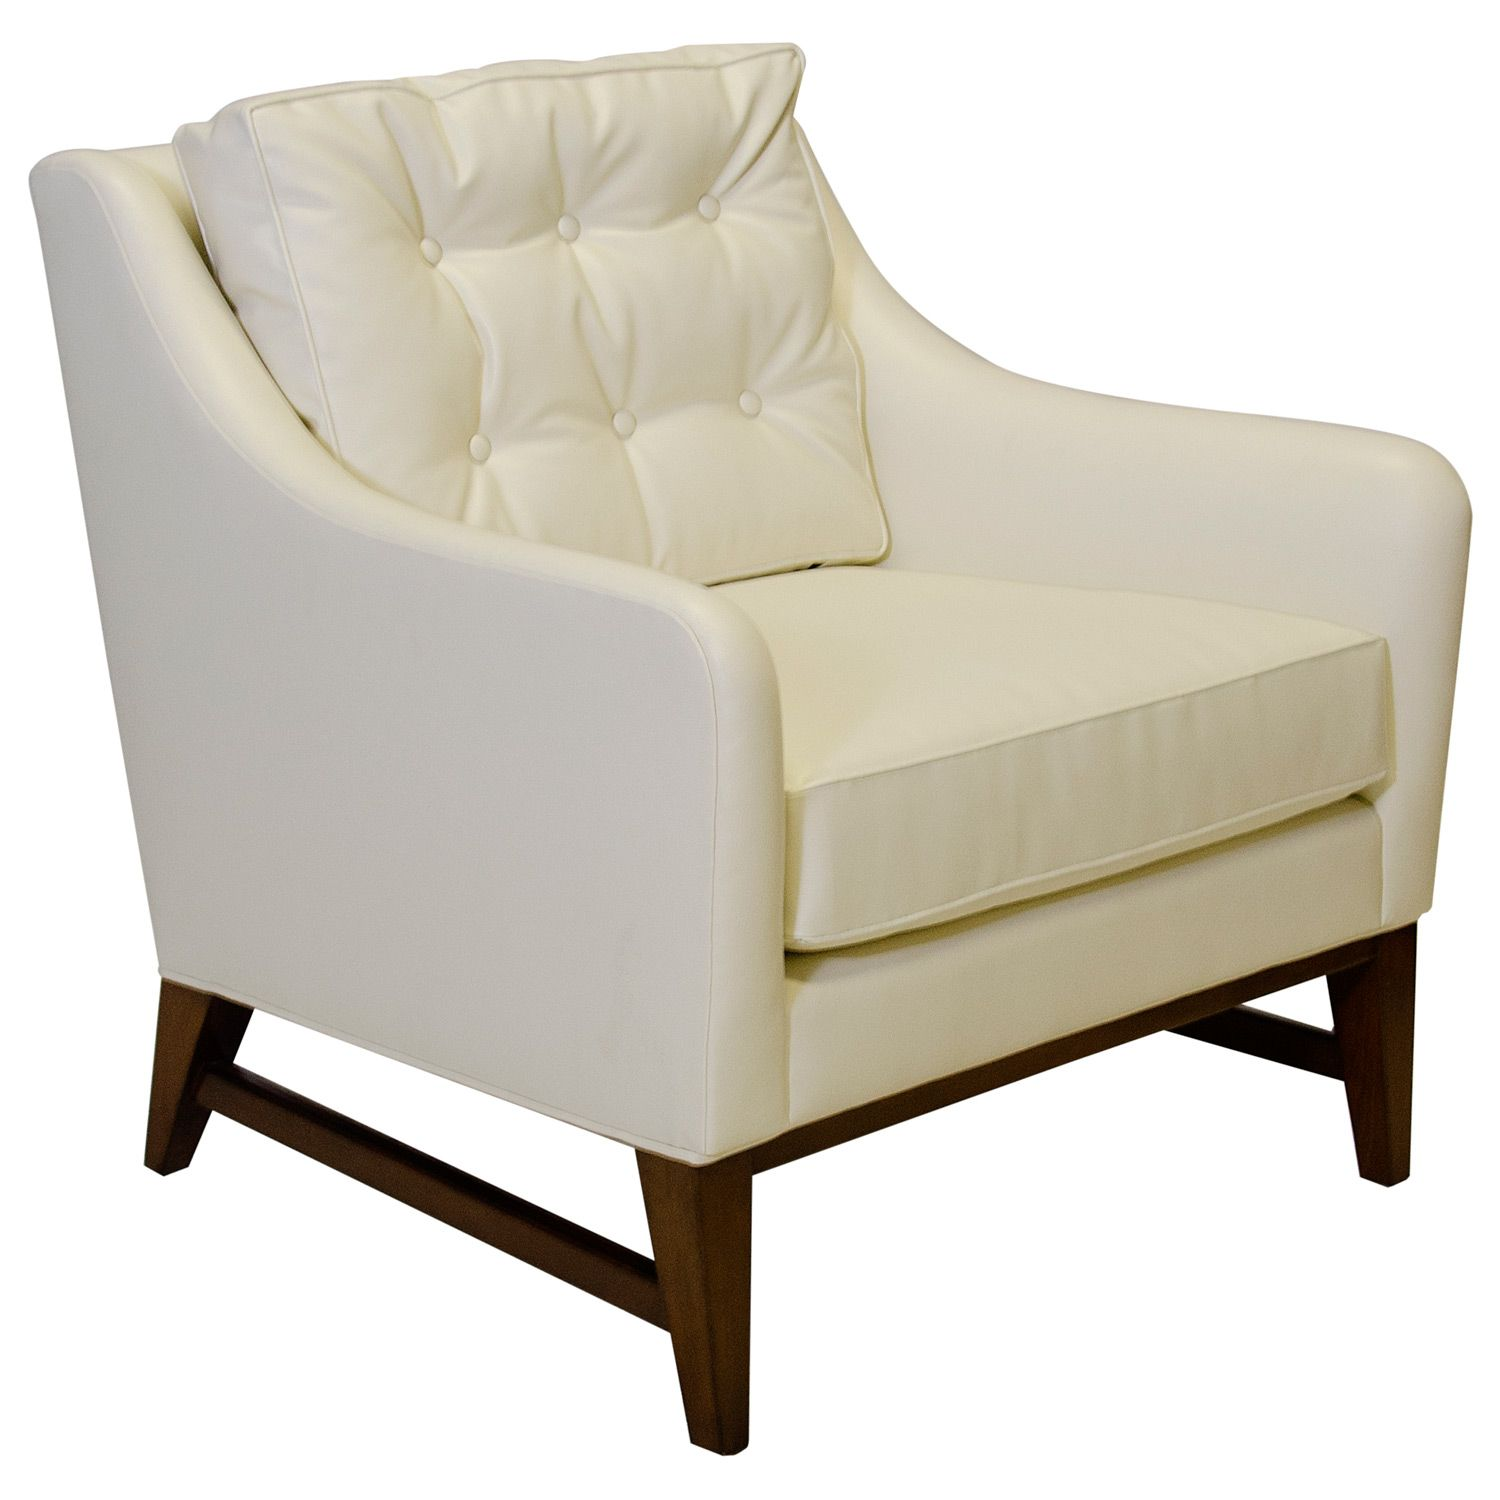 world away furniture. Worlds Away Chester Chair @LaylaGrayce World Away Furniture S